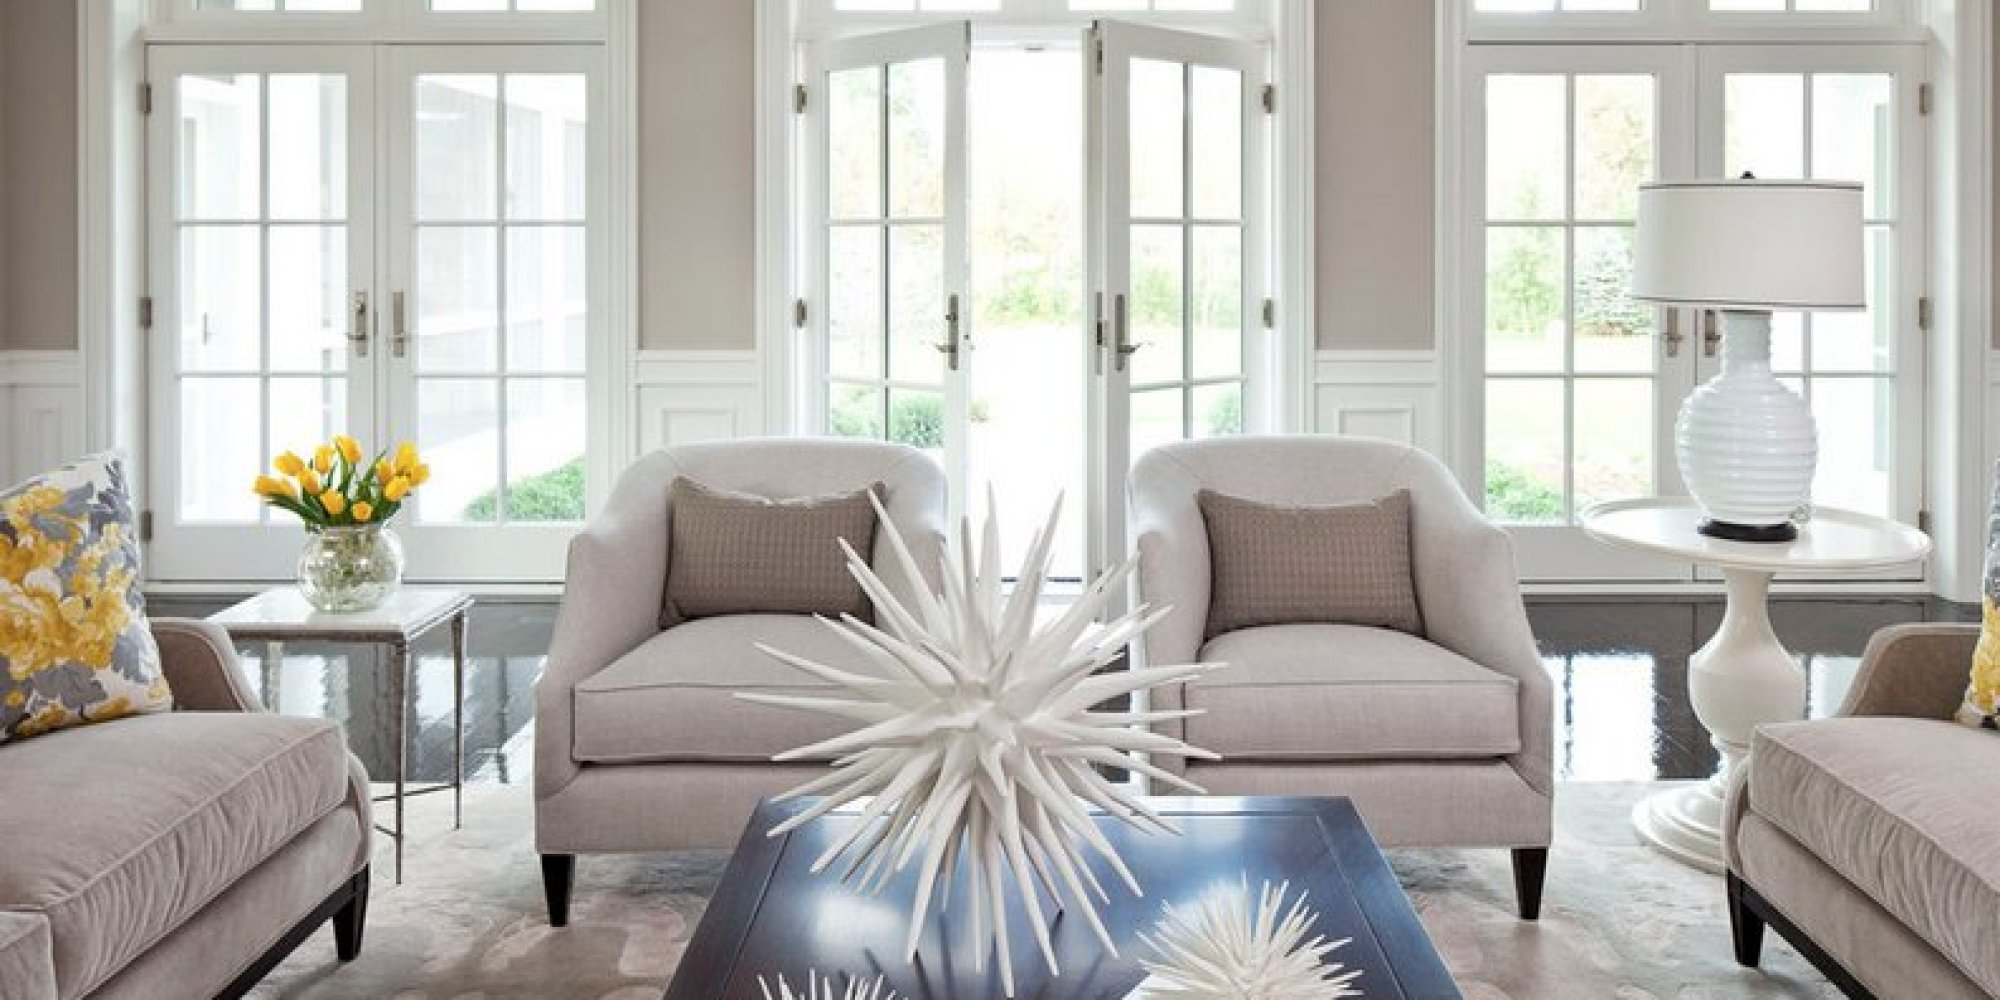 Neutral Paint Colors The 8 Best Neutral Paint Colors That'll Work In Any Home No